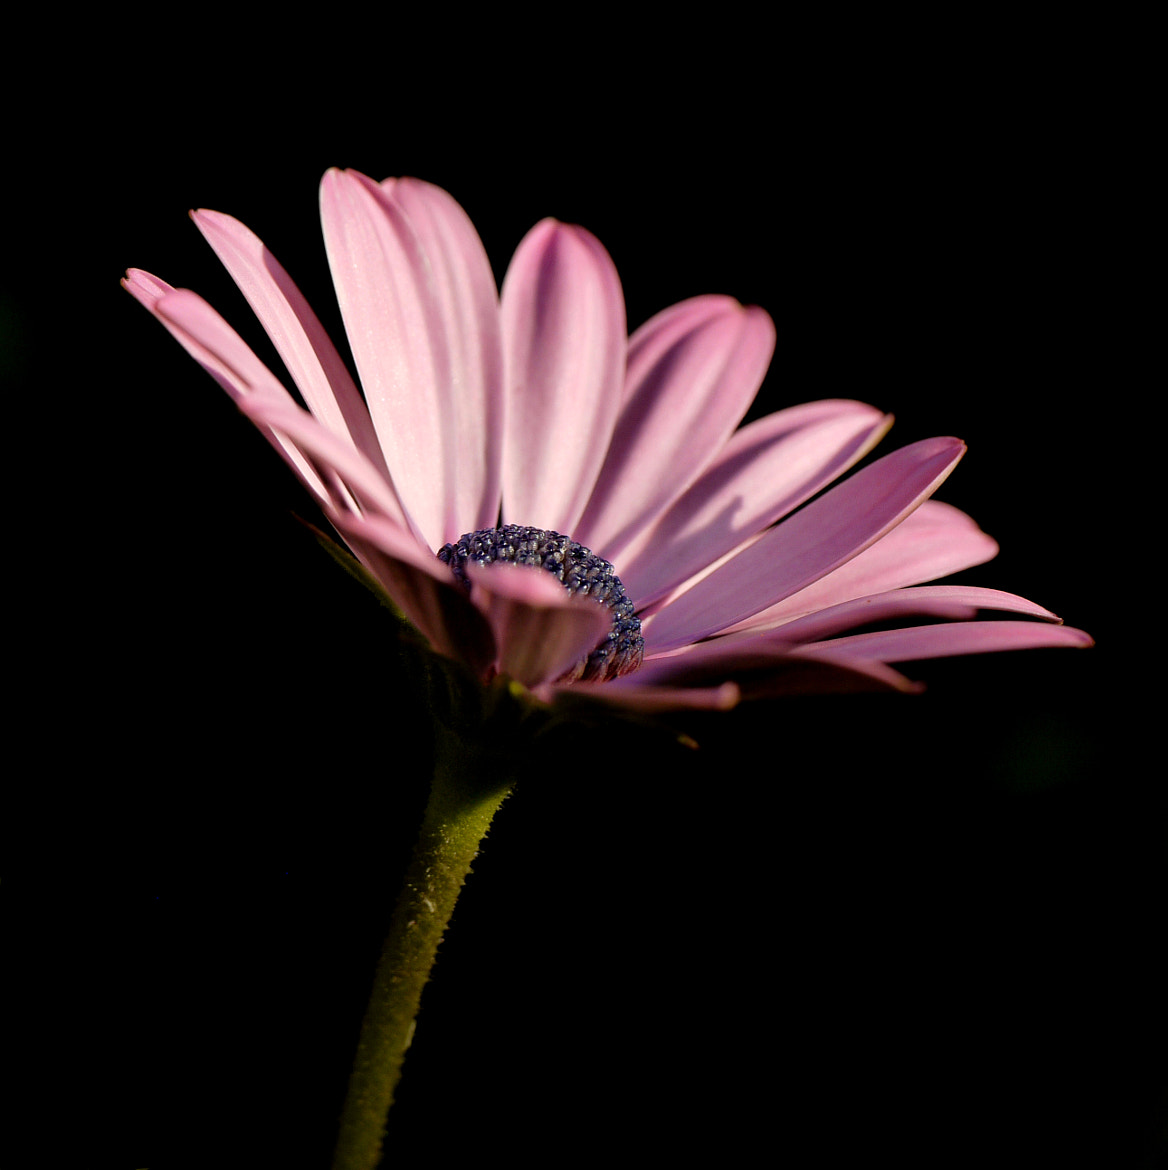 Photograph Pink on Black by John Flick Purchase on 500px